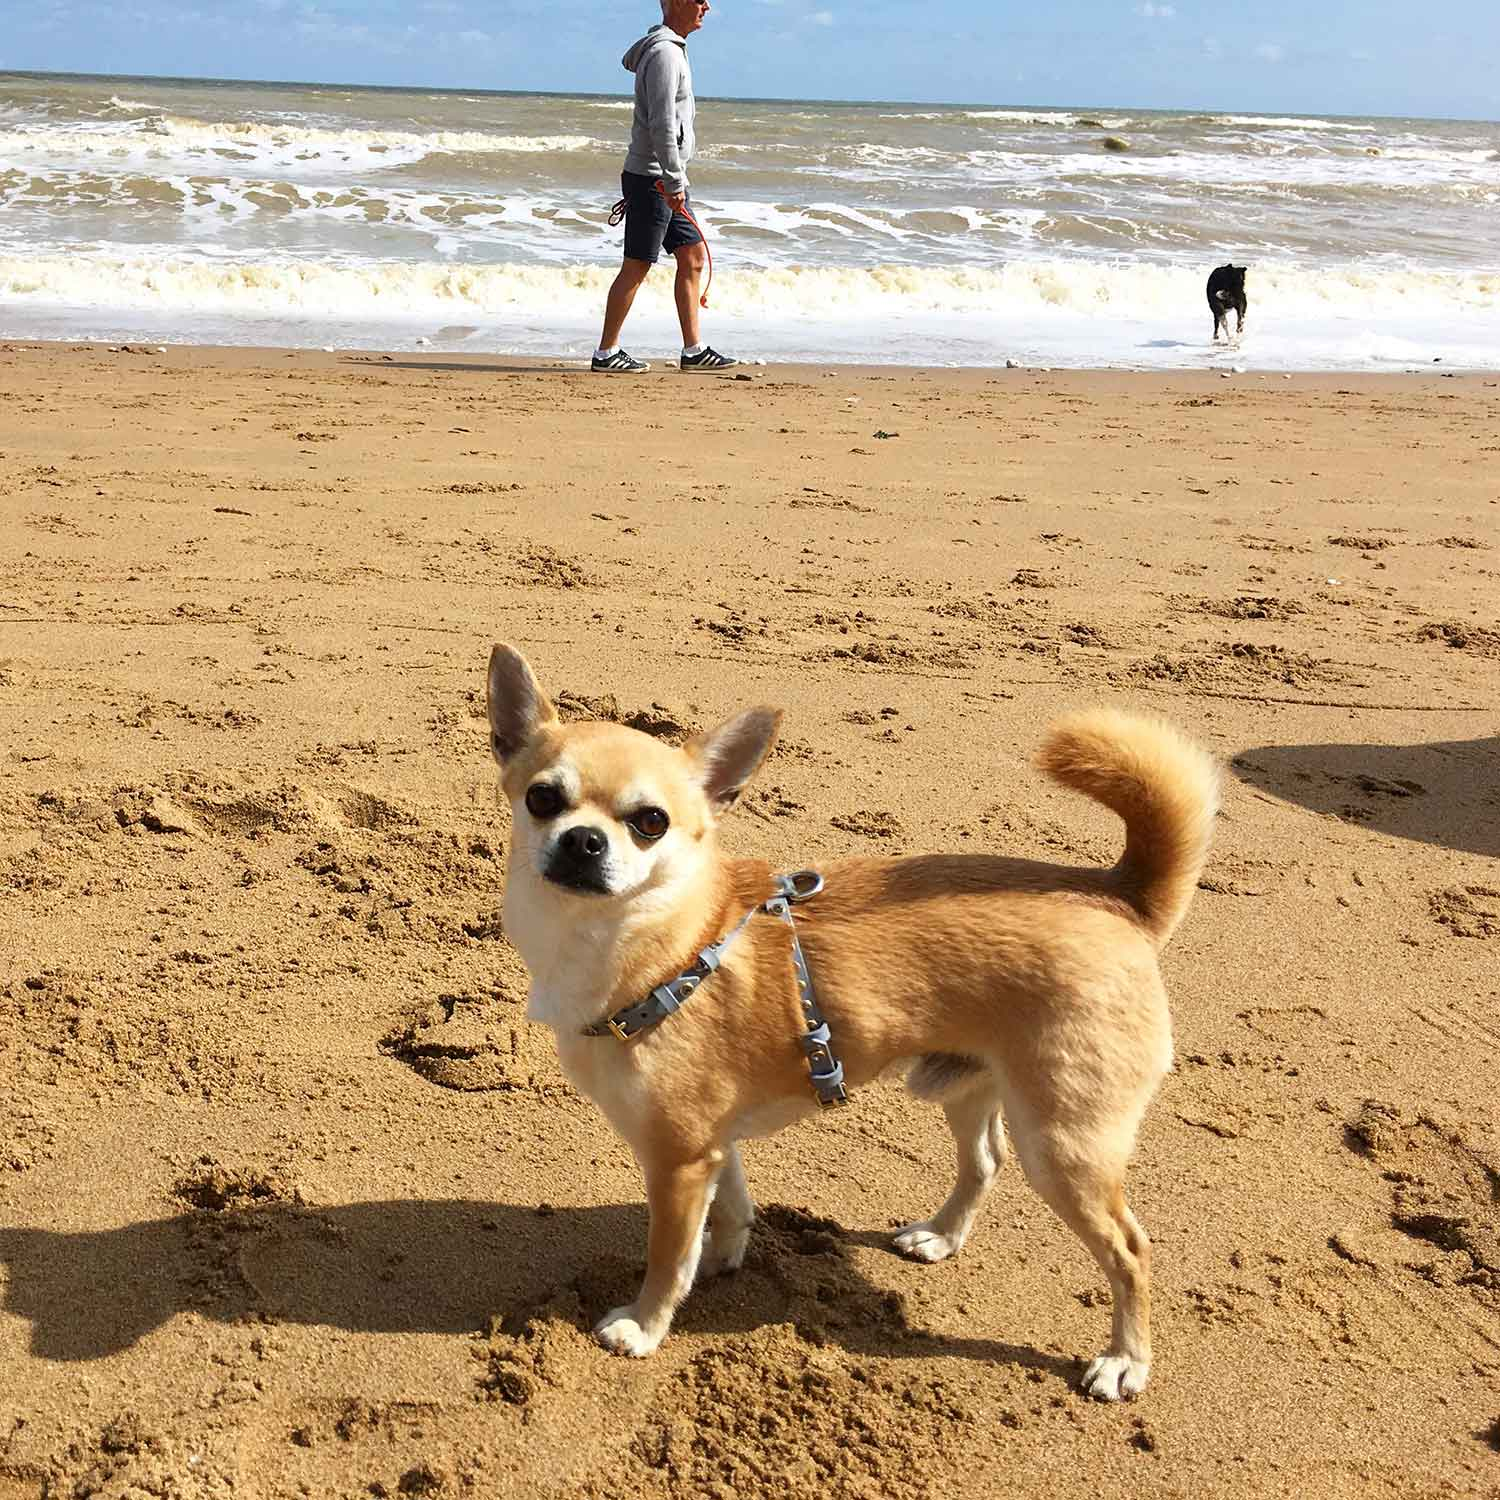 Chilli Chihuahua walking on the beach